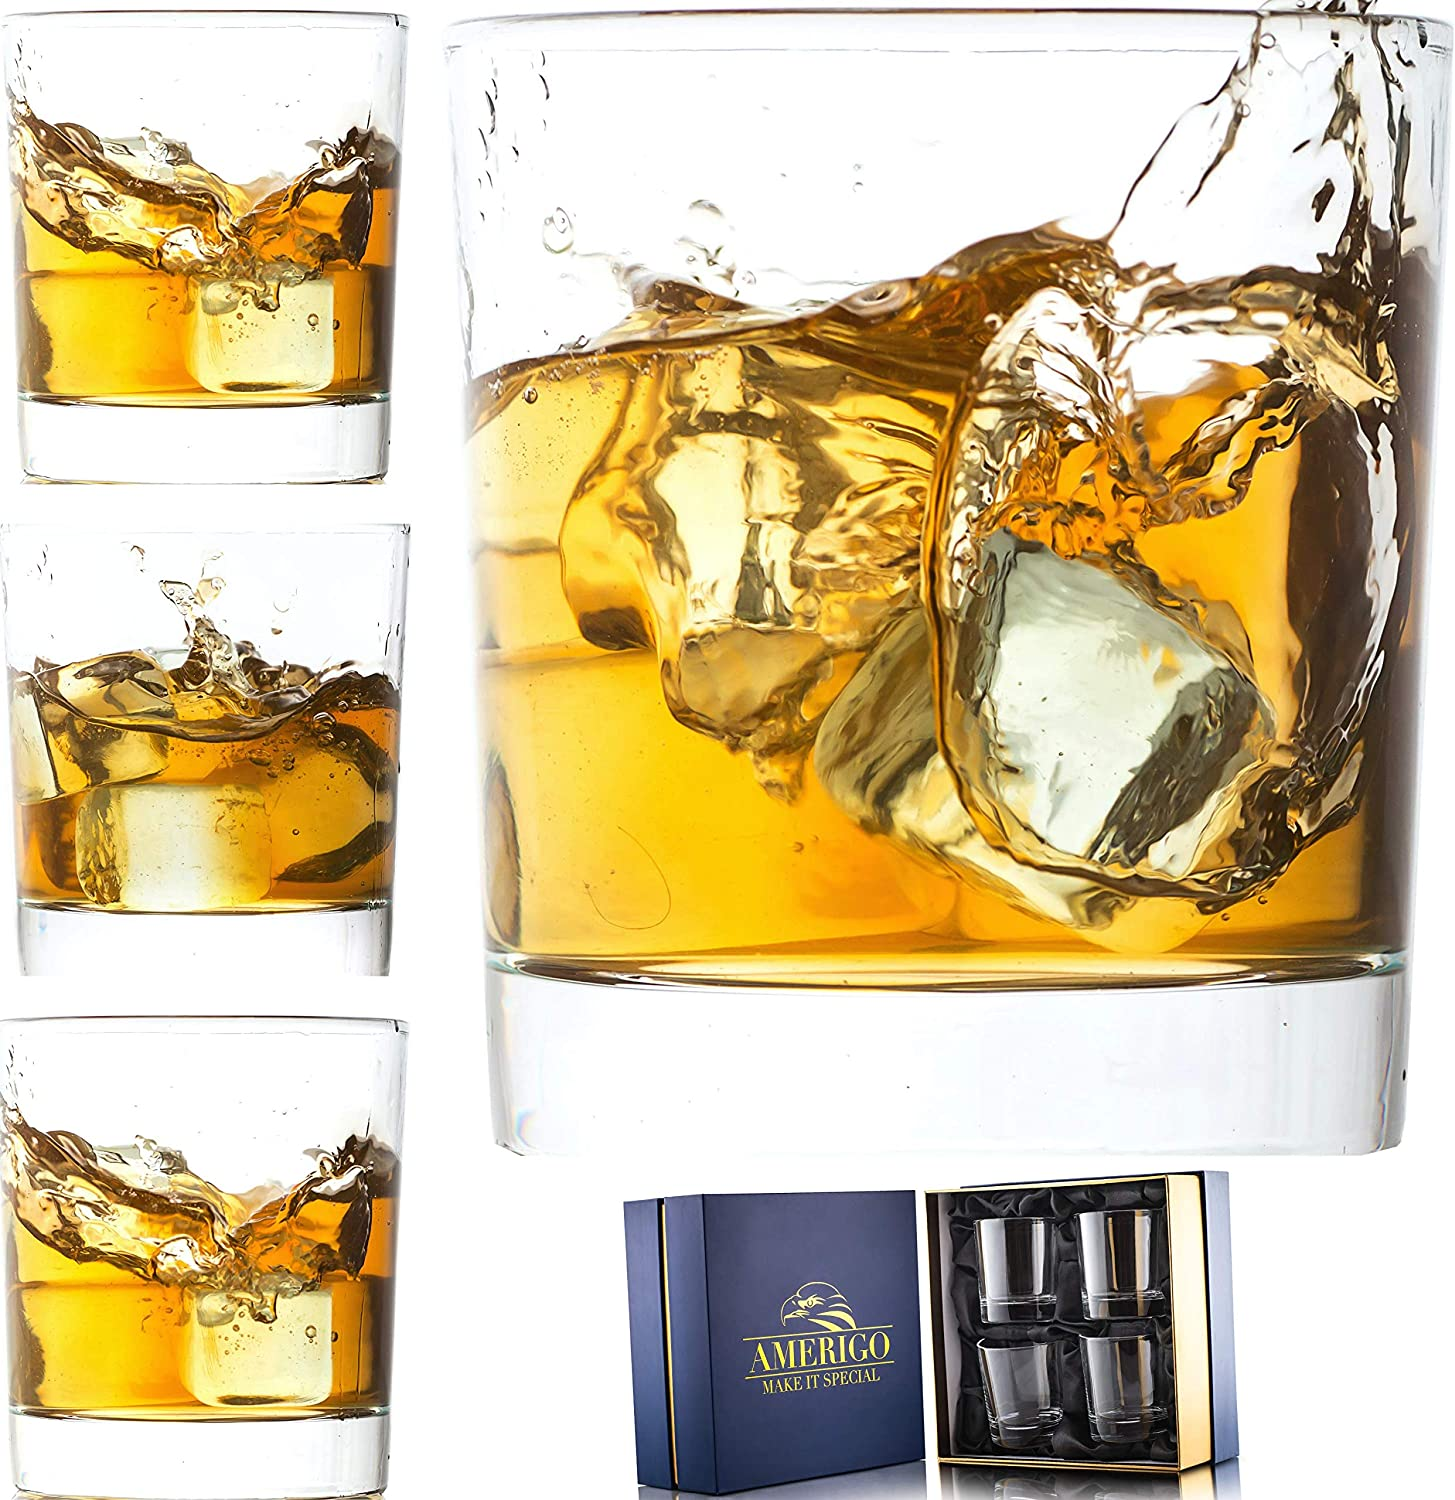 Amerigo Crystal Whiskey Glass Set of 4 in Luxury Gift Box - Heavy Base Old Fashioned Whiskey Glasses 10oz for Scotch - Whisky Gift for Men - Bourbon Glass Tumblers - Fathers Day Gift - Home Bar Set